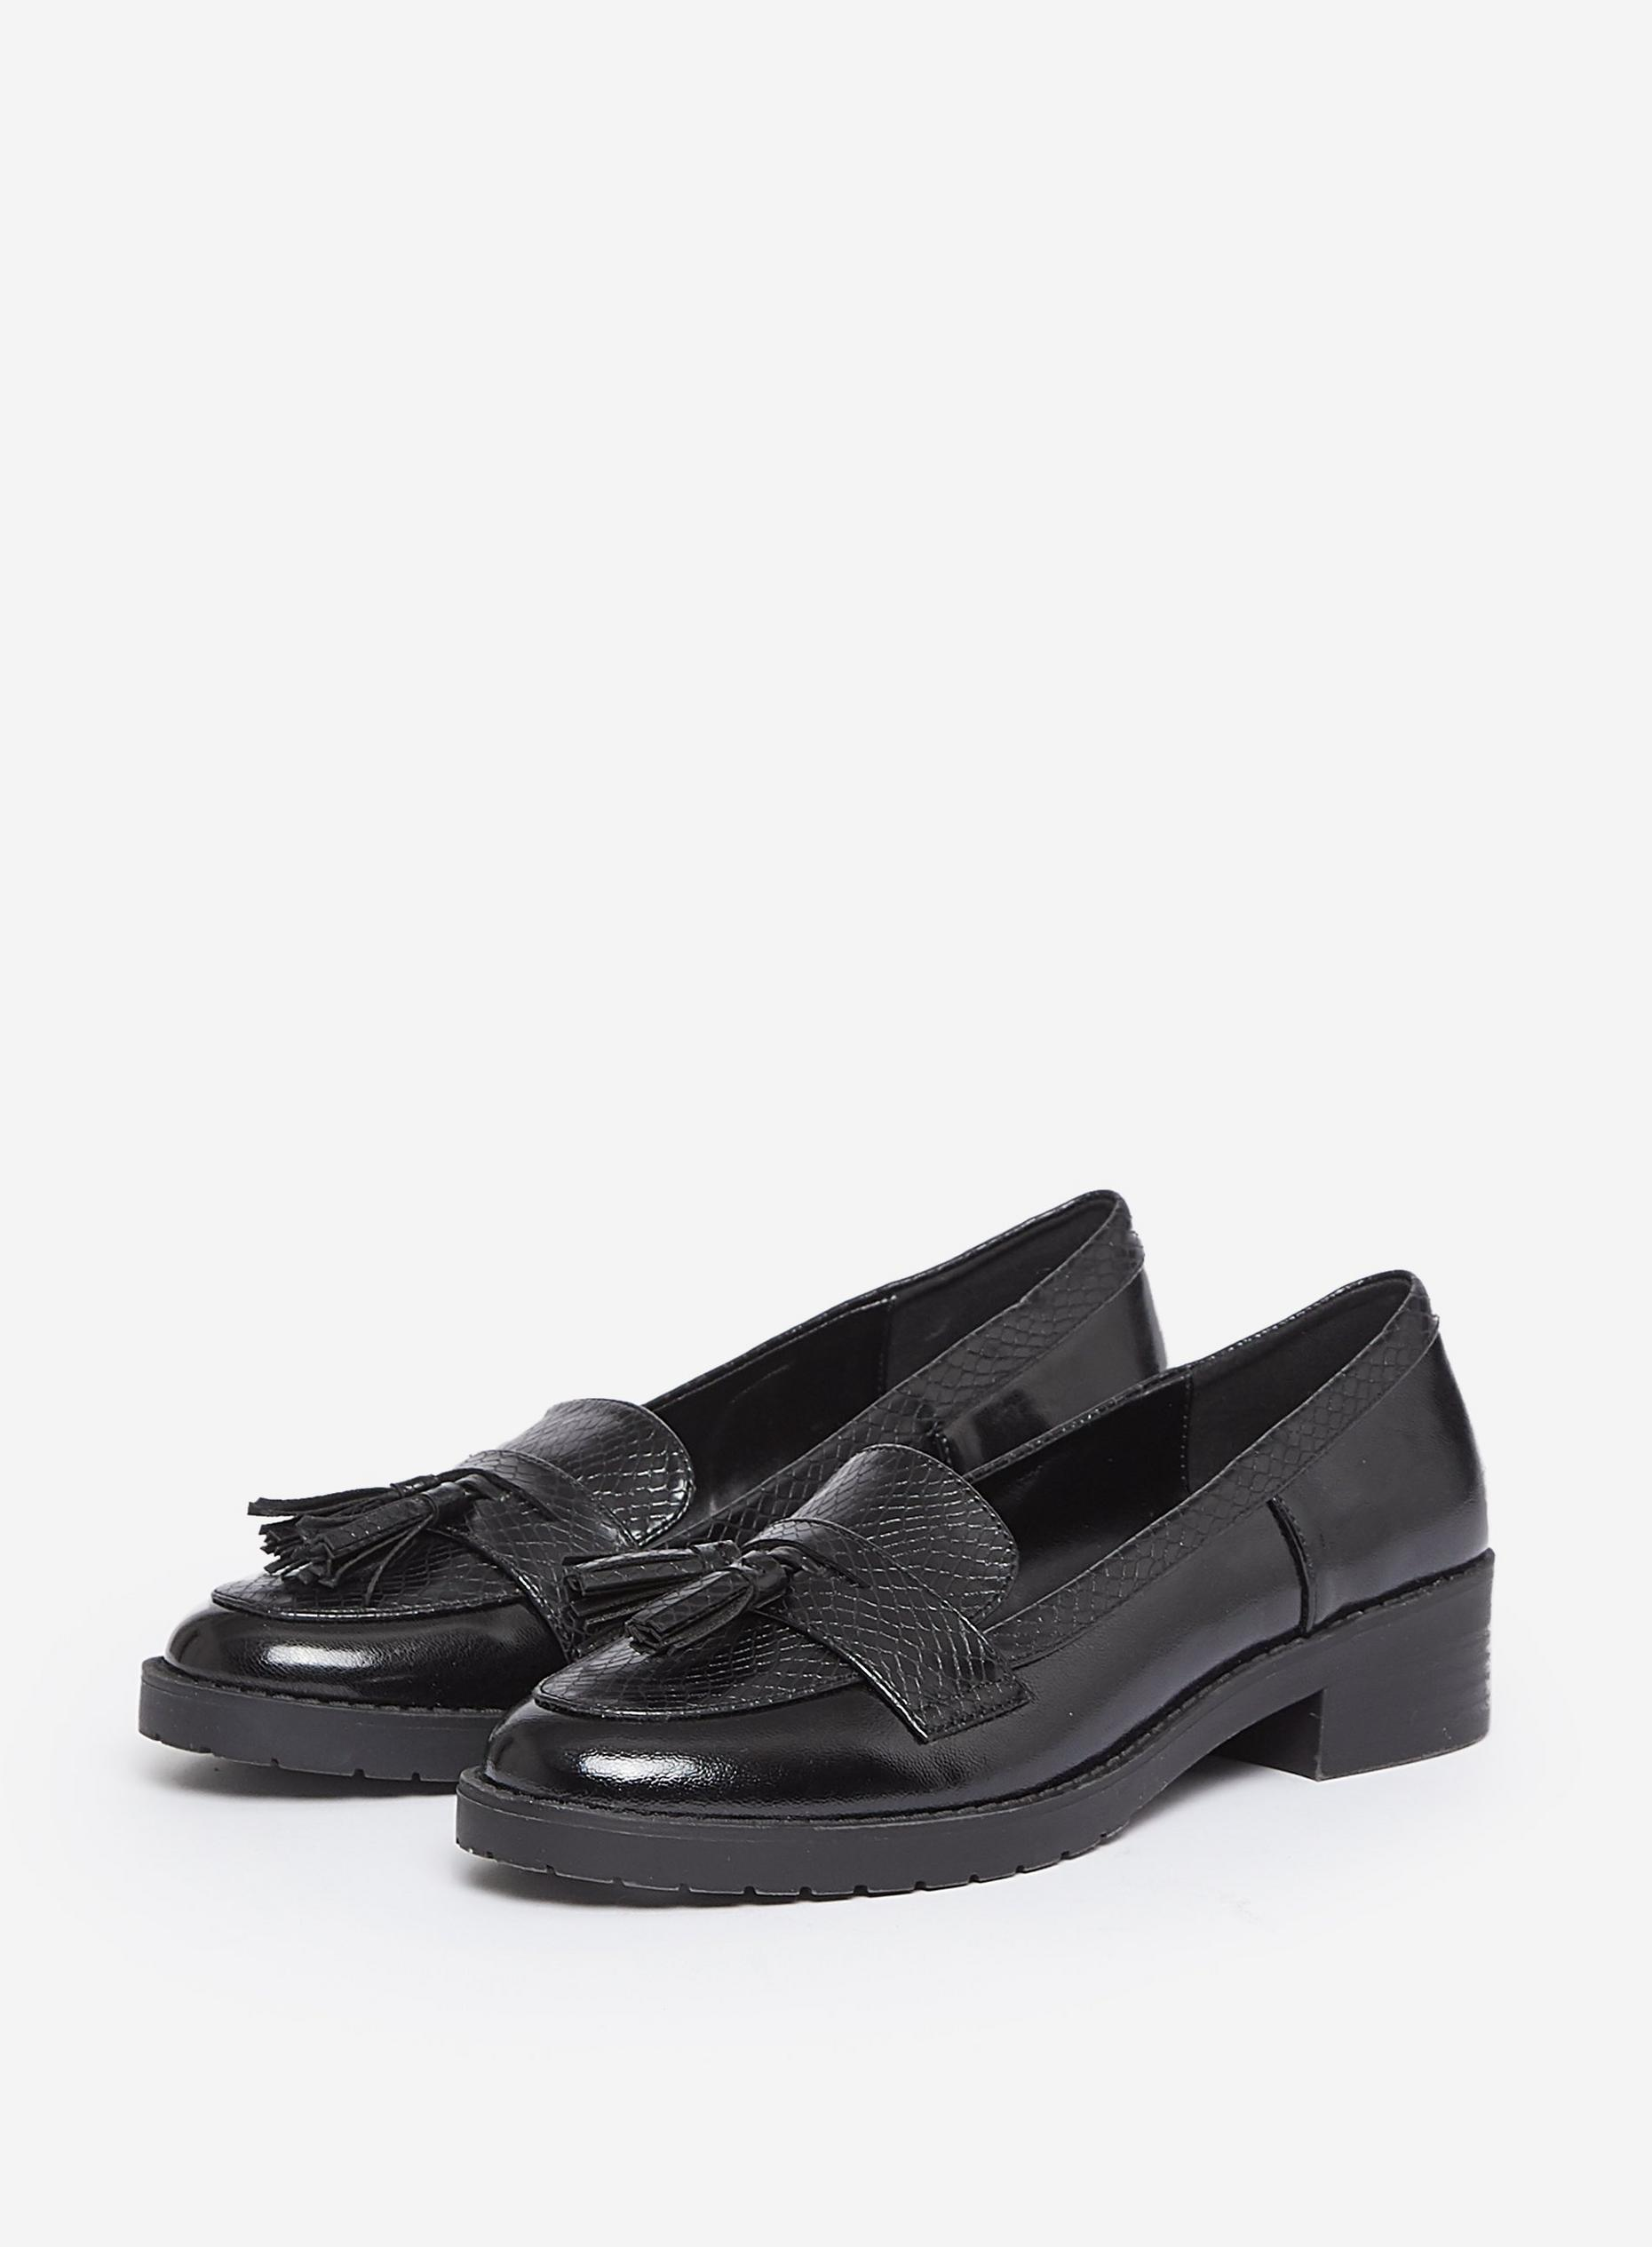 Black Litty Loafers